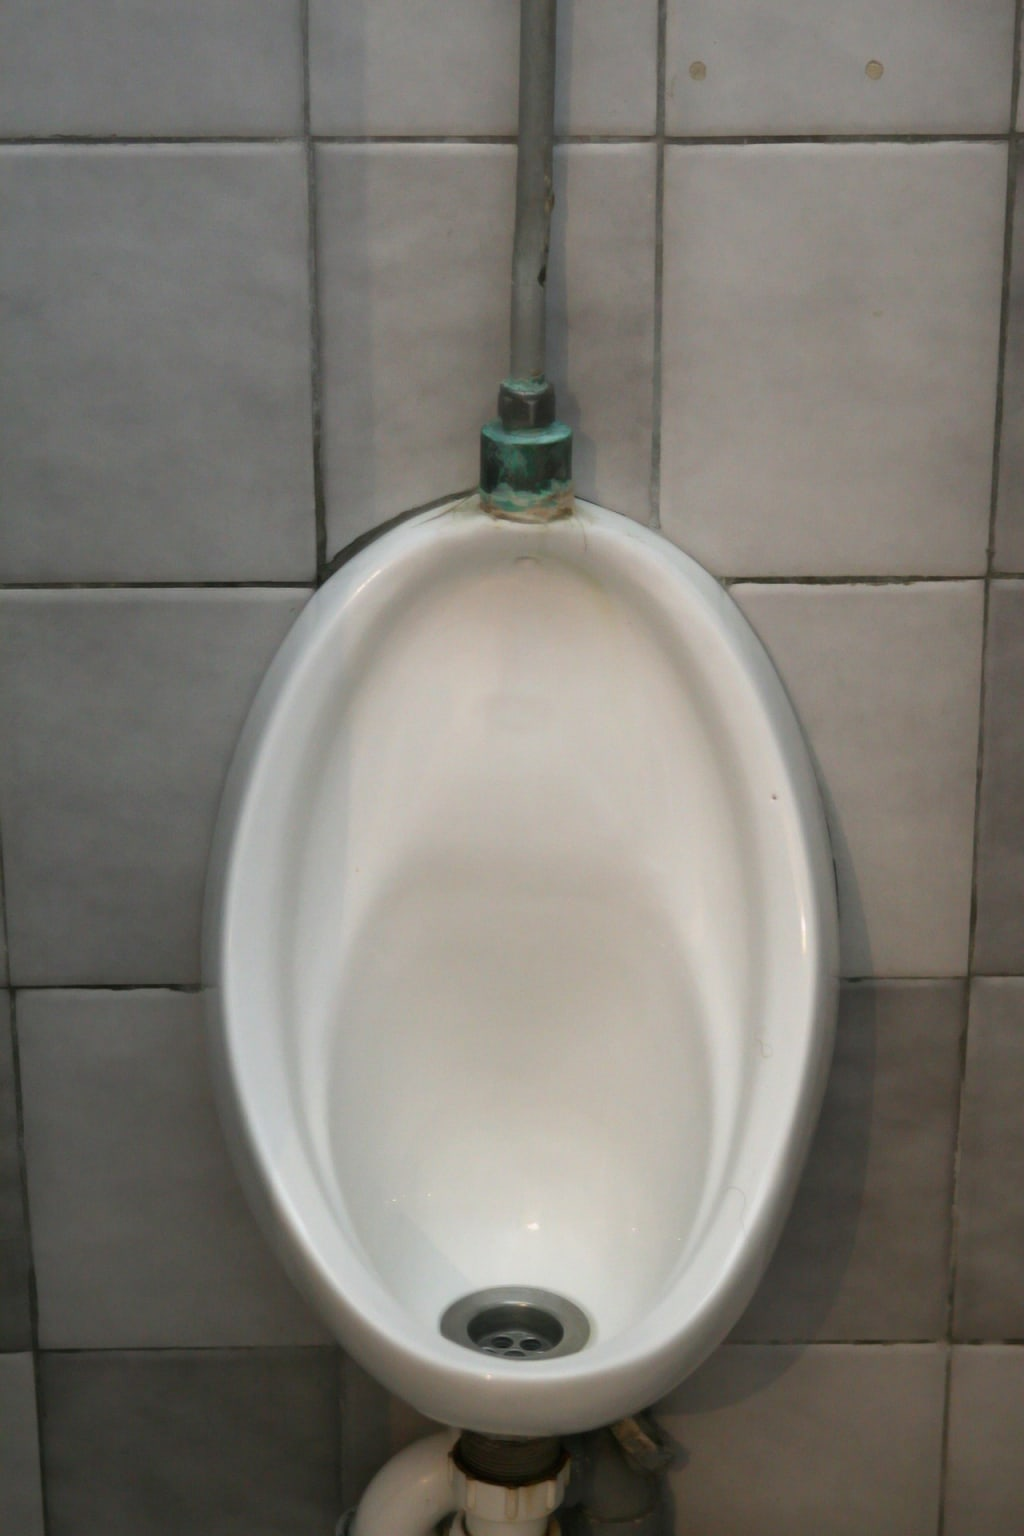 Haunting the Urinal